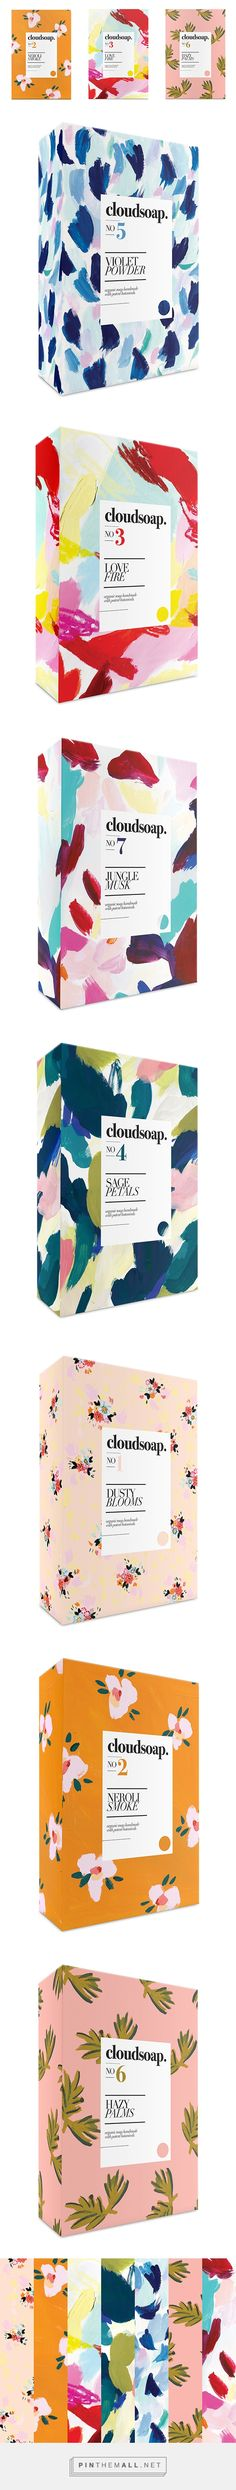 Cloudsoap Packaging - by illustrator Katy Smail